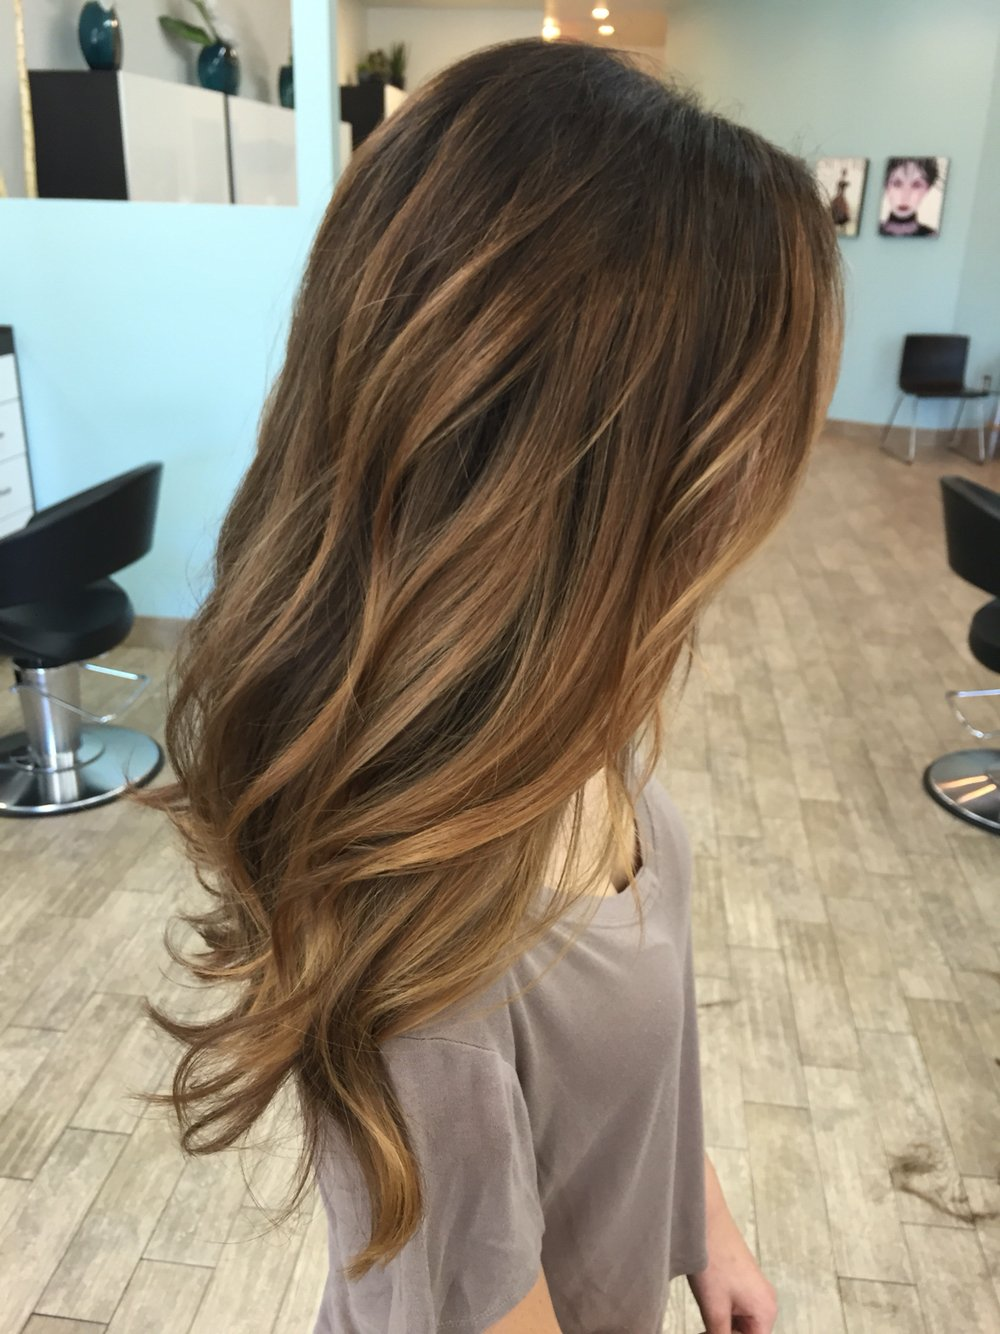 Ombre Hair Brown To Caramel To Blonde Medium Length 15 Cortes de pelo para...